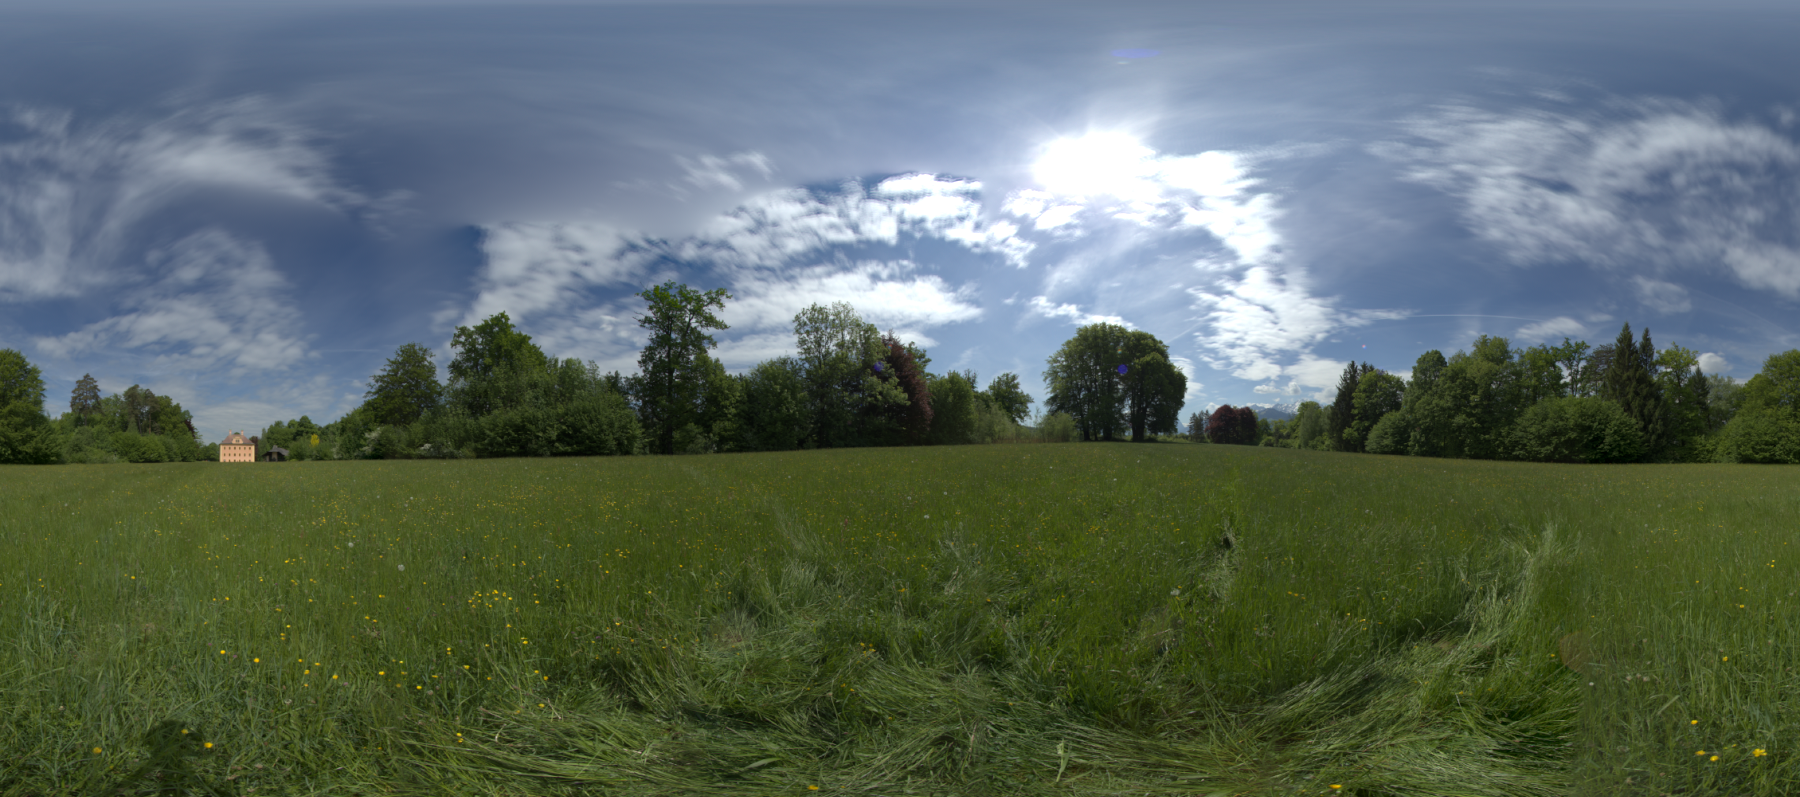 HDR_Wiese_v02.png